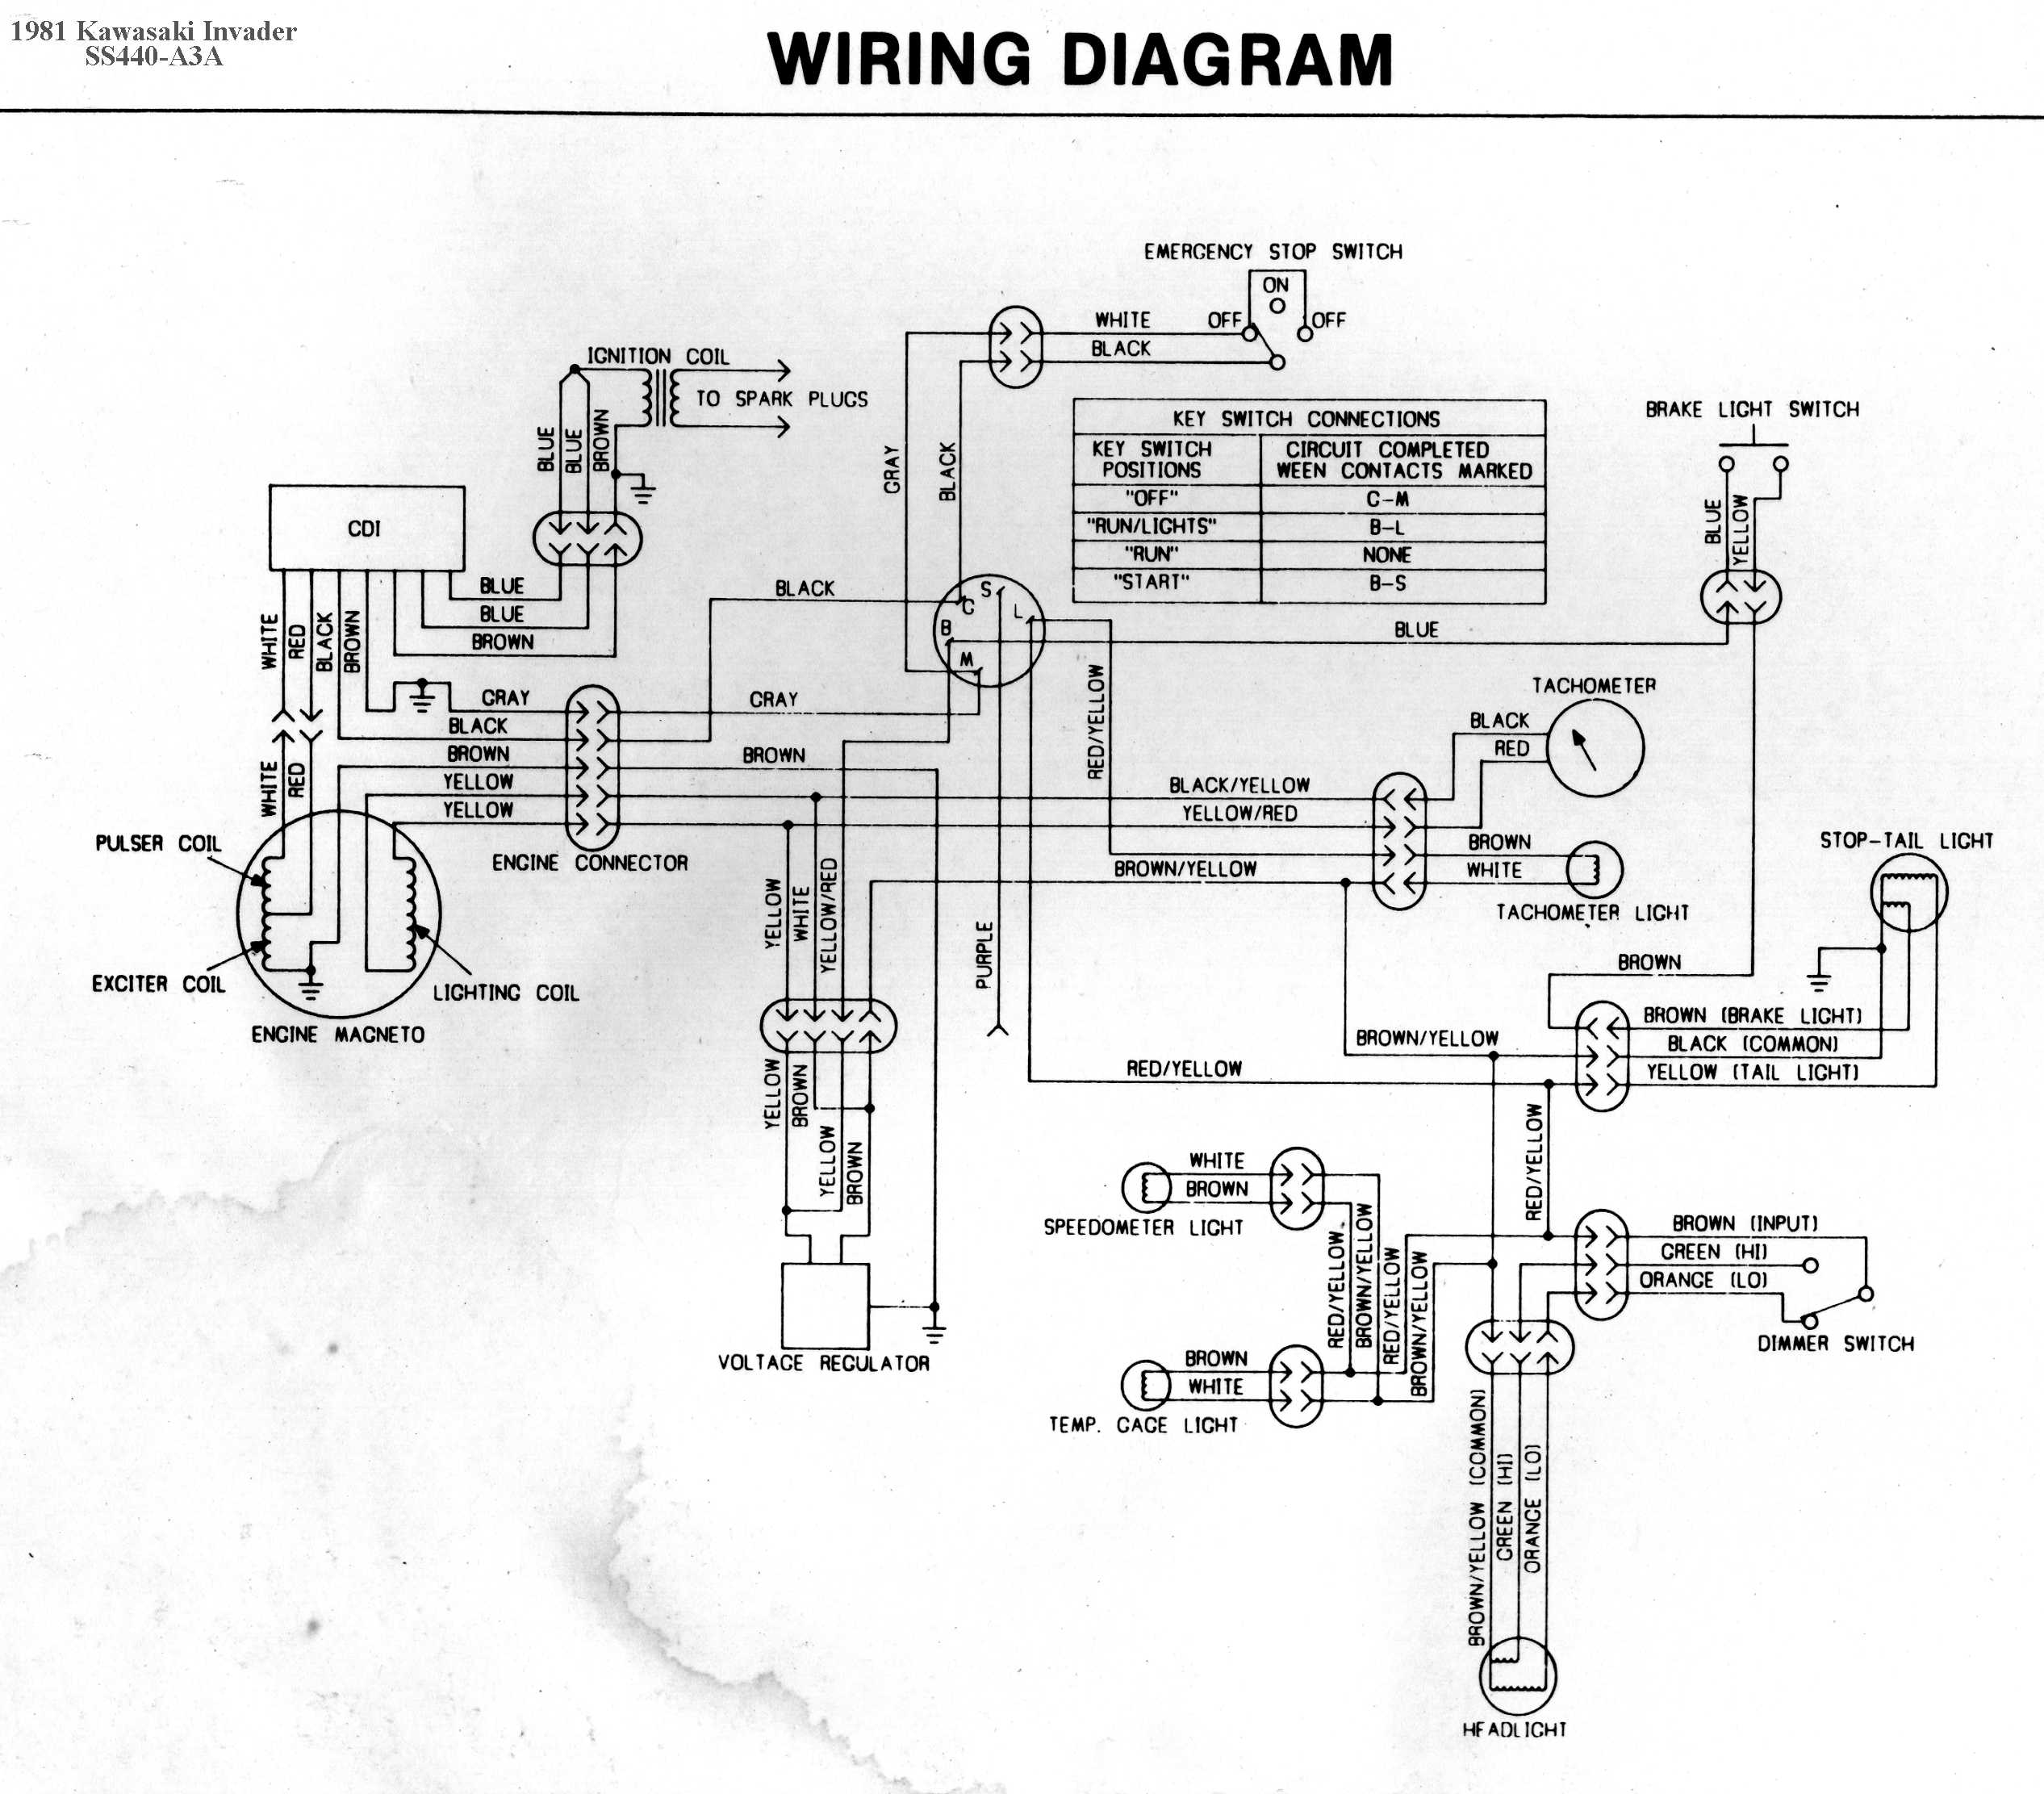 ss440a3a kawasaki invader snowmobile wiring diagrams 1981 kawasaki 440 ltd wiring diagram at n-0.co